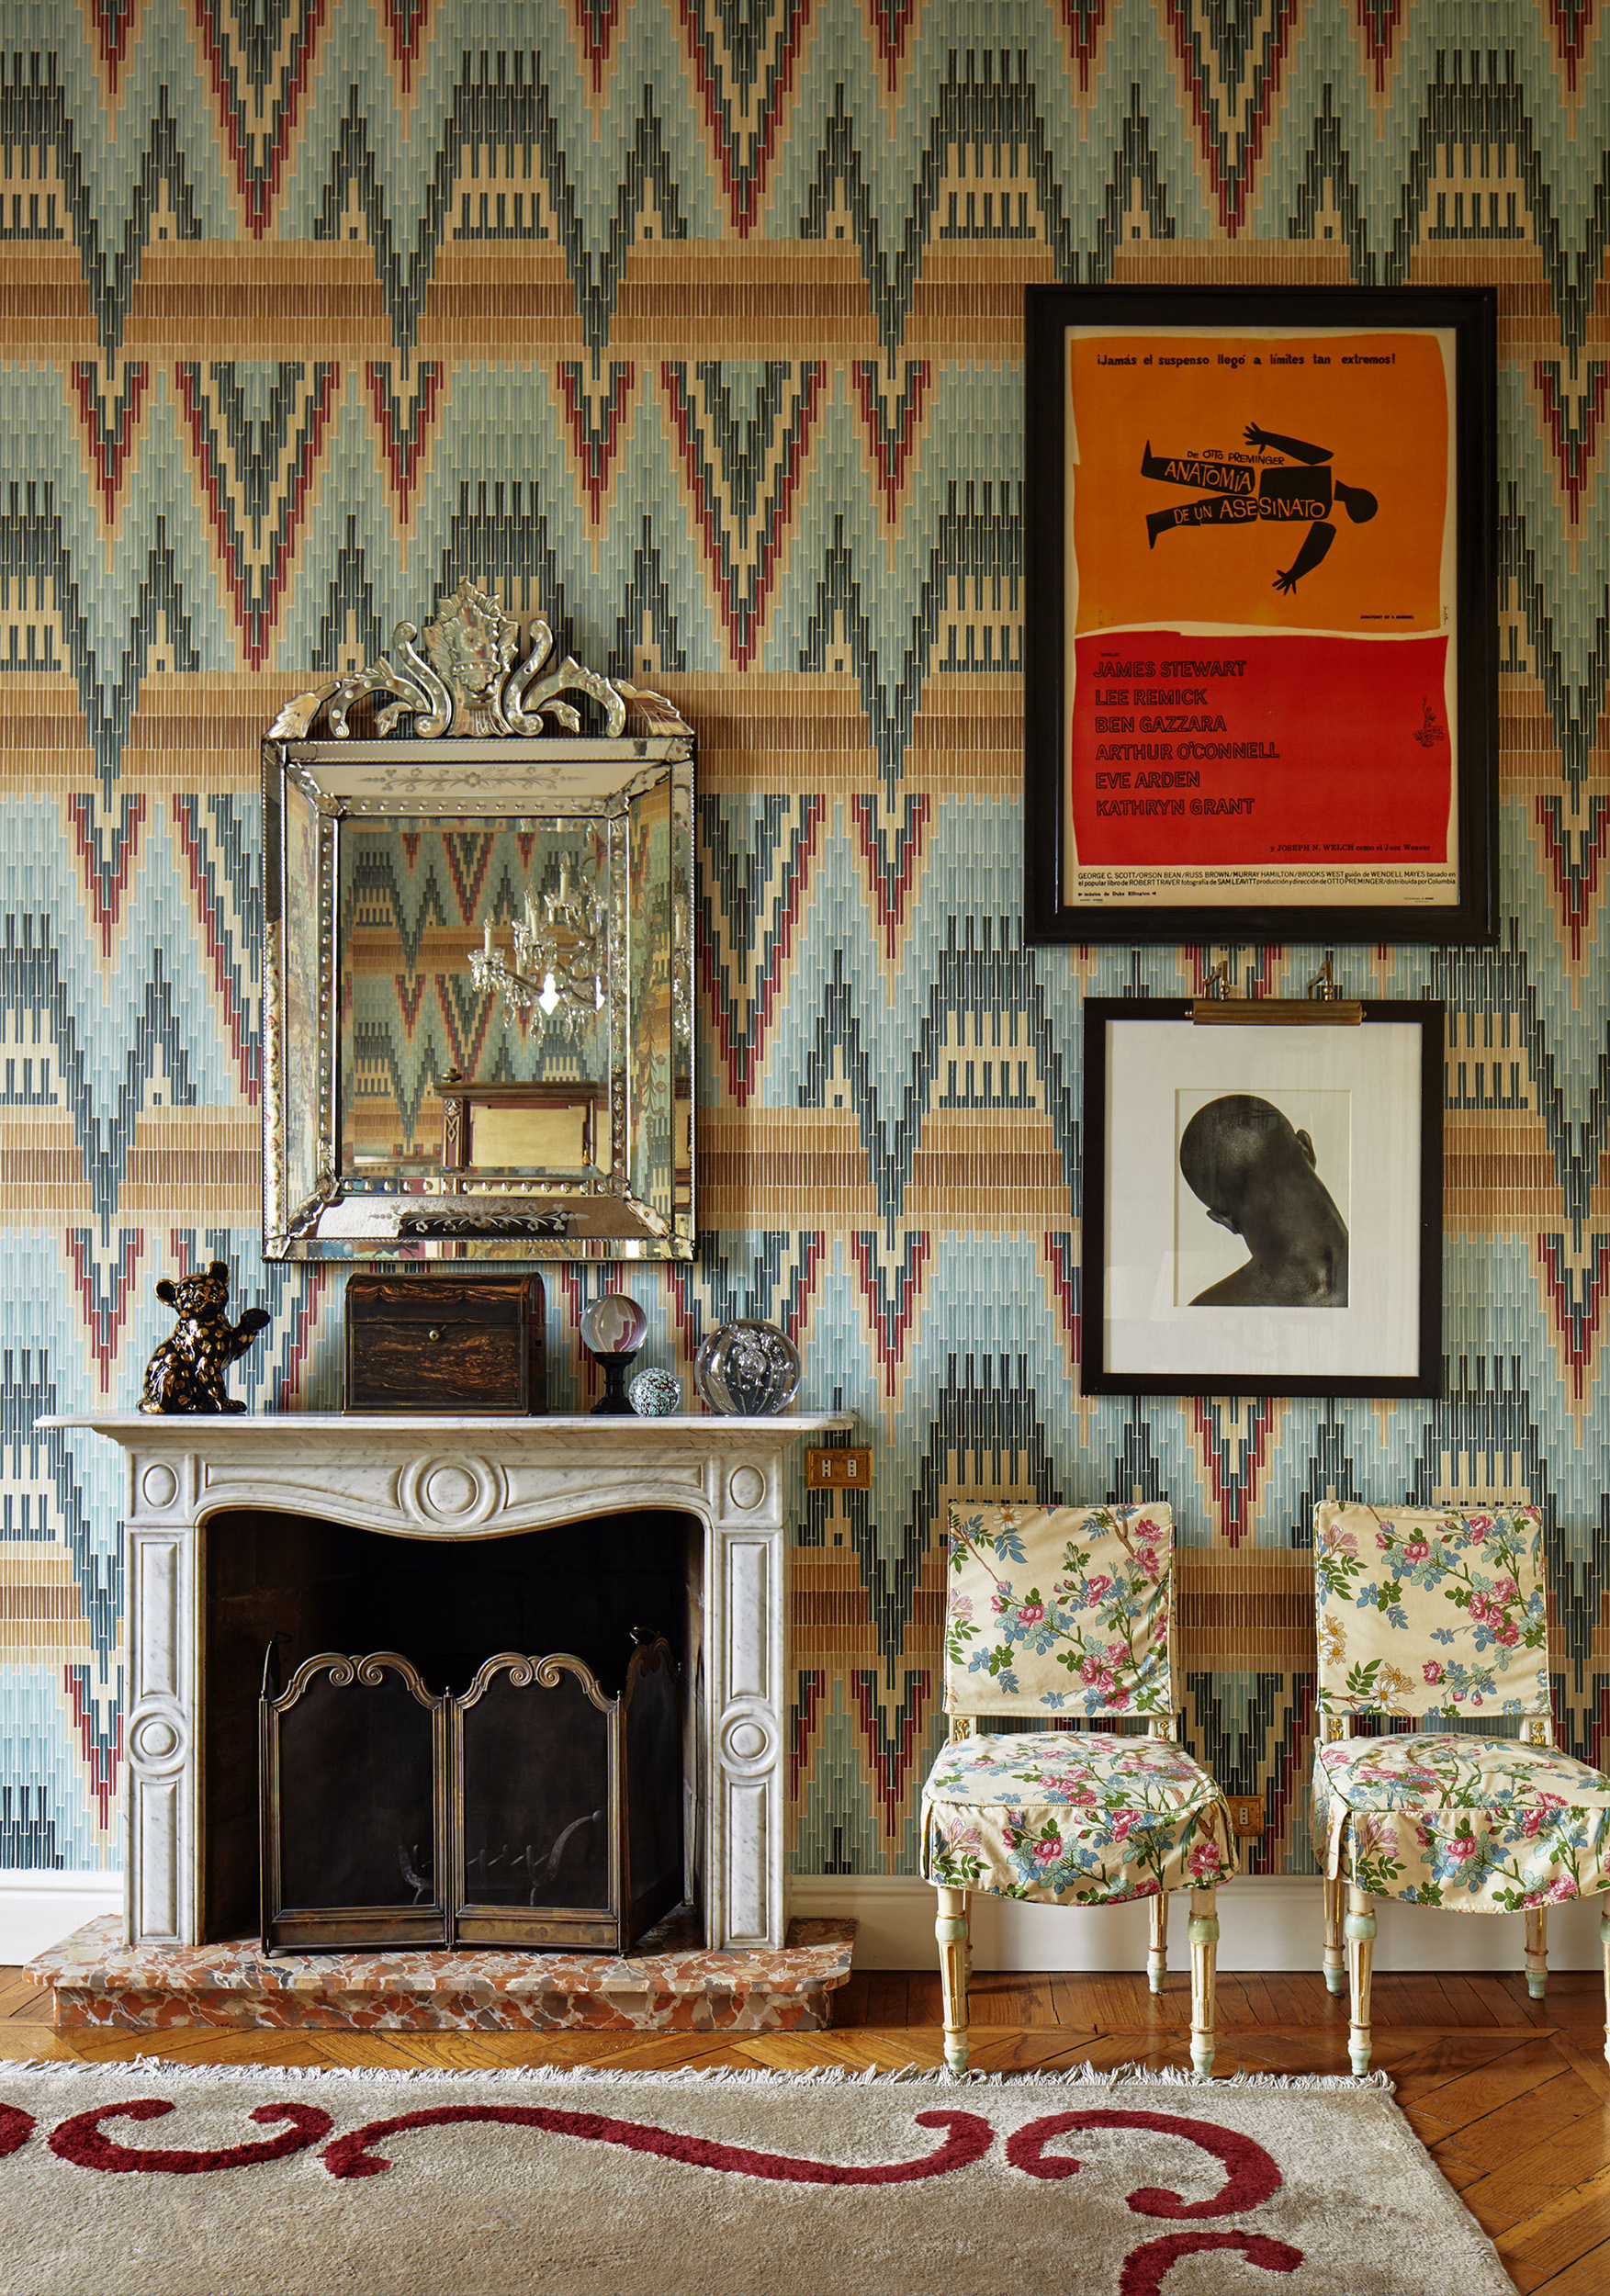 Fromental Image 5